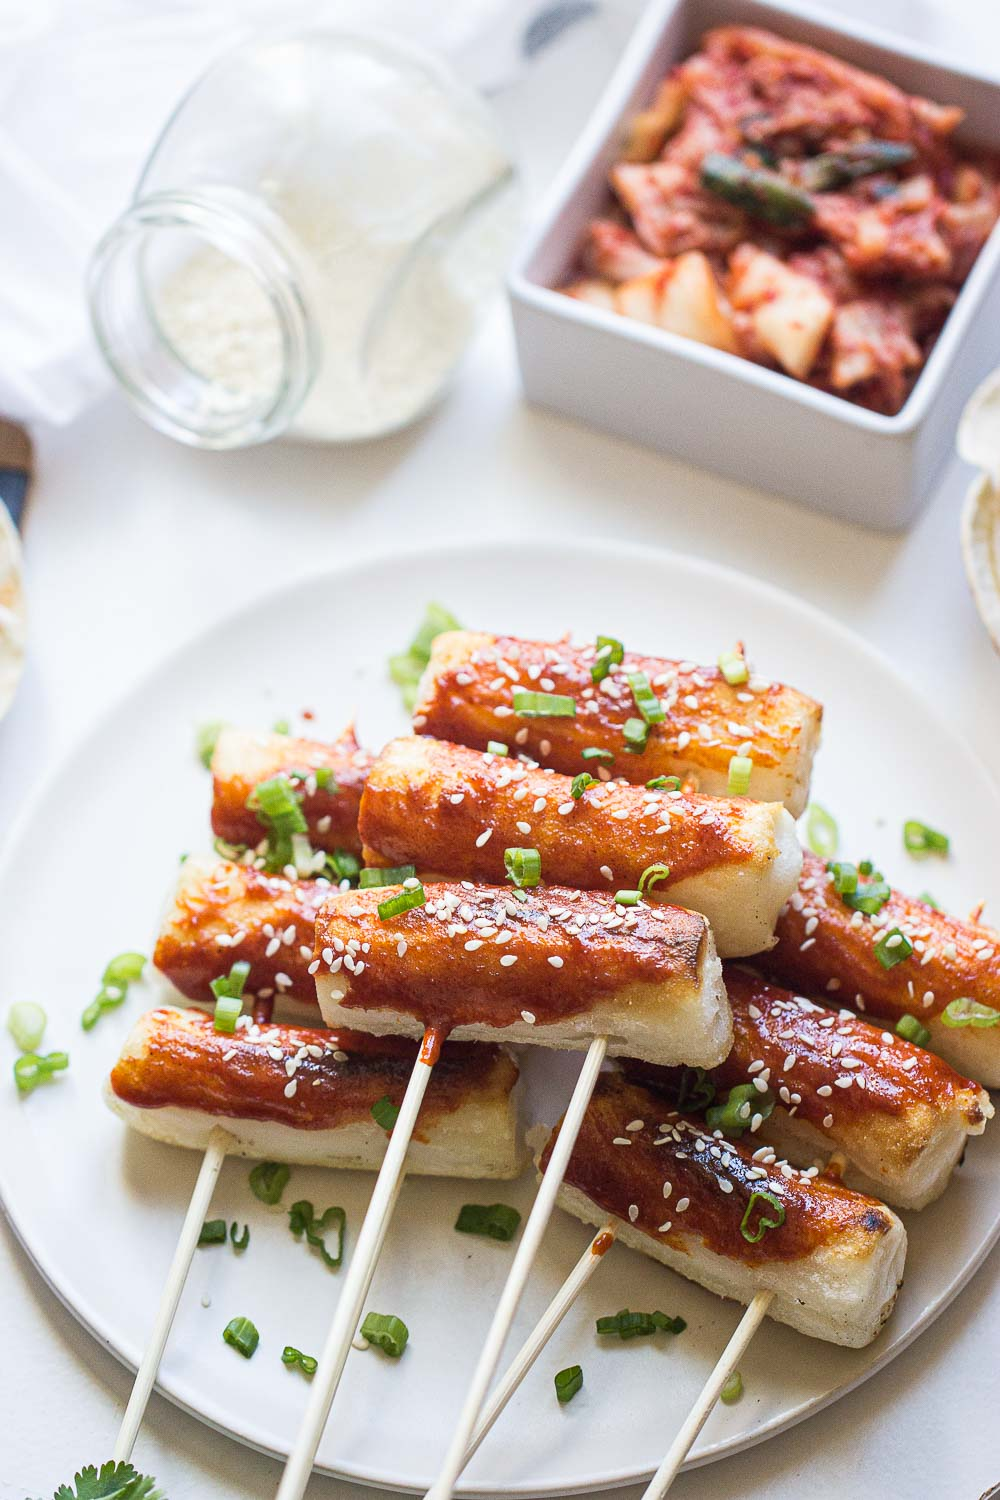 These Grilled Tteokbokki Is A Popular Korean Street Food